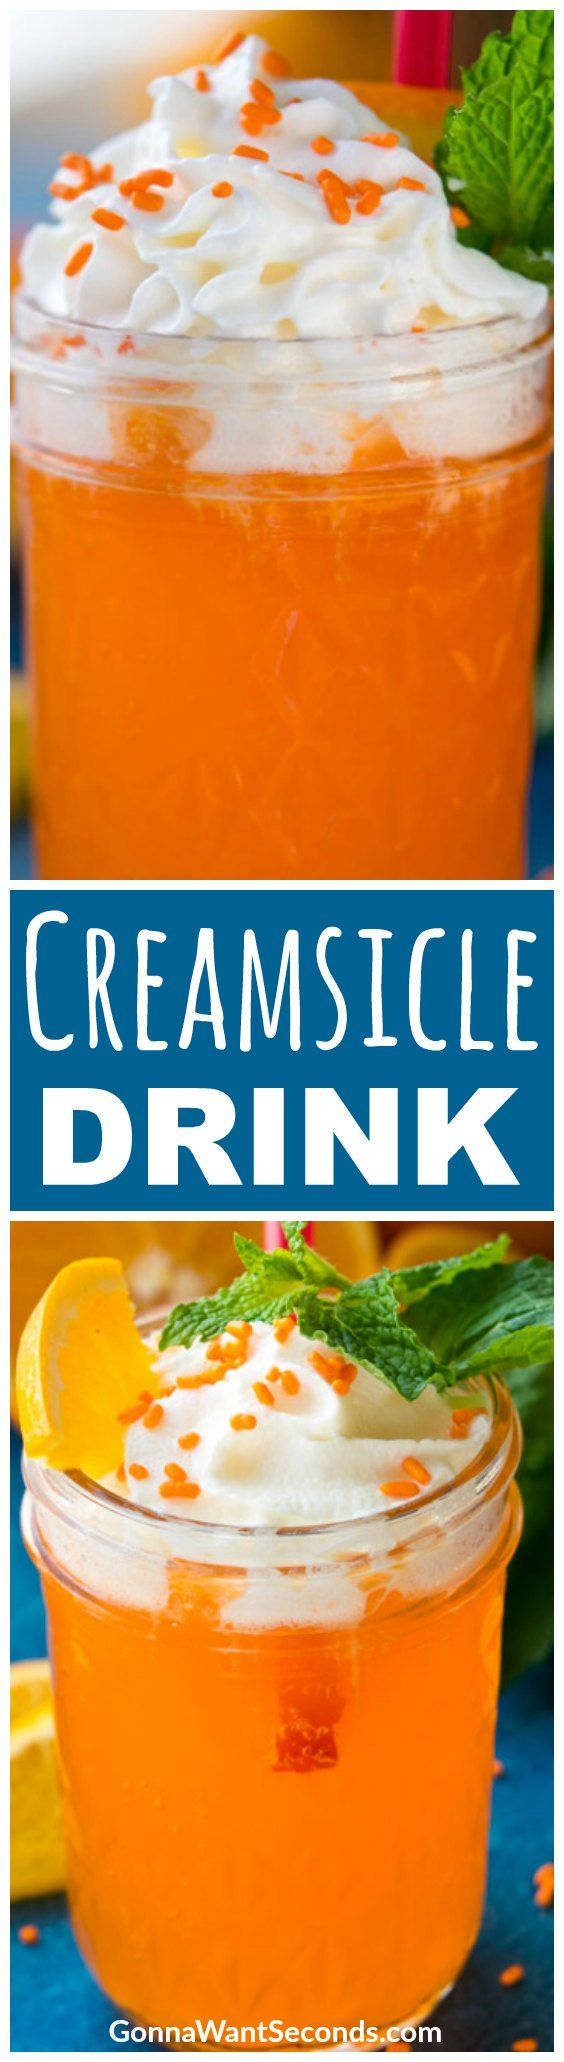 """You say """"creamsicle,"""" I say cocktail! This Creamsicle Drink recipe marries orange and vanilla cream with vodka to make one sweet bubbly beverage that's sure to conjure happy memories of forgotten summer treats. #Vodka #Alcohol #Parties #Cocktails #Orange #WhippedCream"""